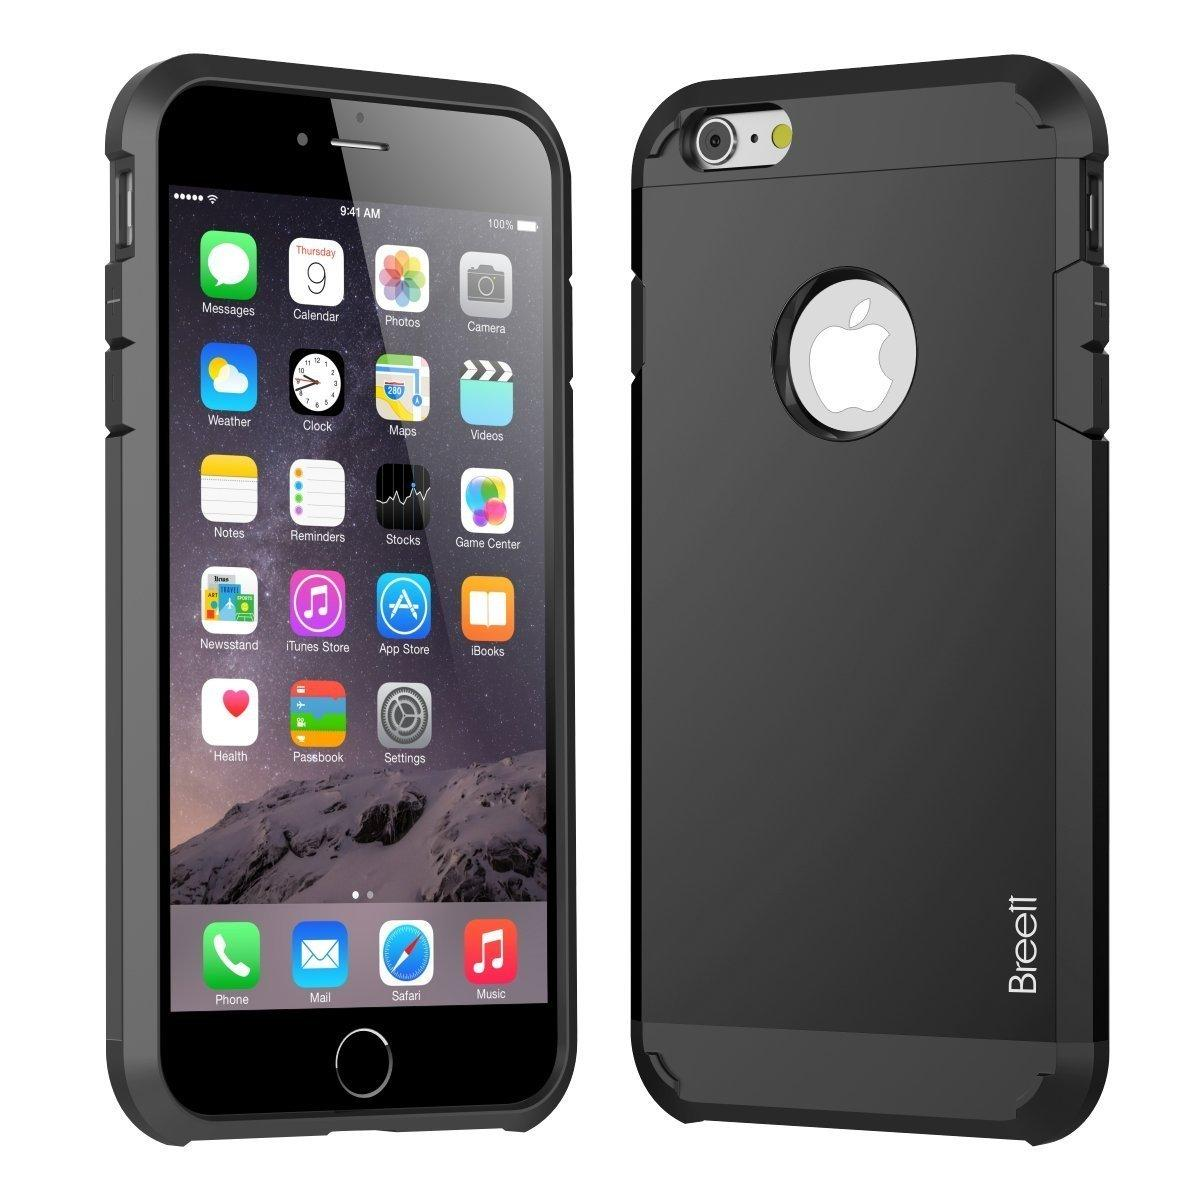 Breett Two-Layer Slim Protective Cover Carrying Case for iPhone 6 Plus 5.5 inch (Black)